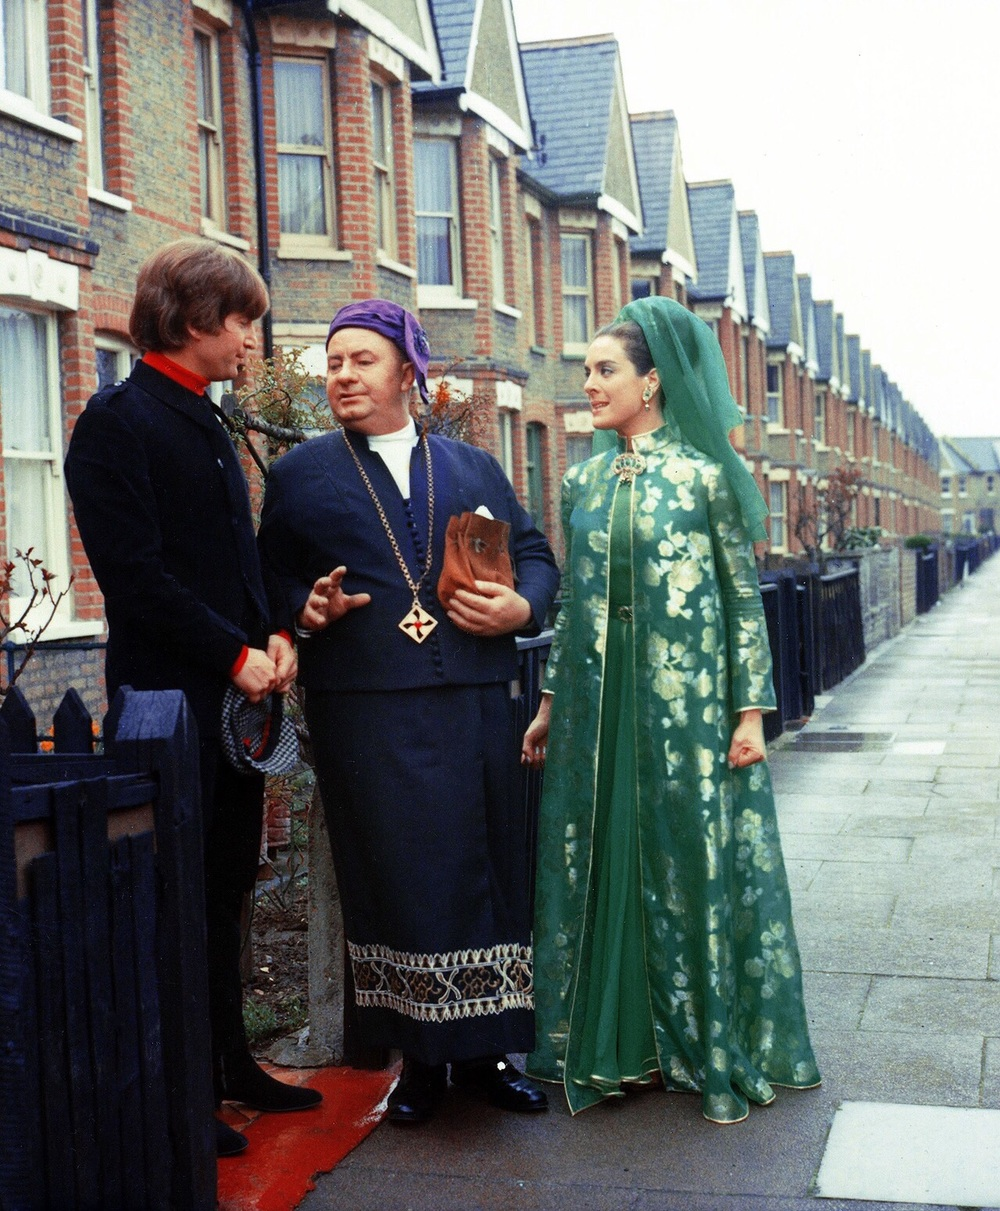 John Lennon with Eleanor Bron filming a scene for Help! 1965.